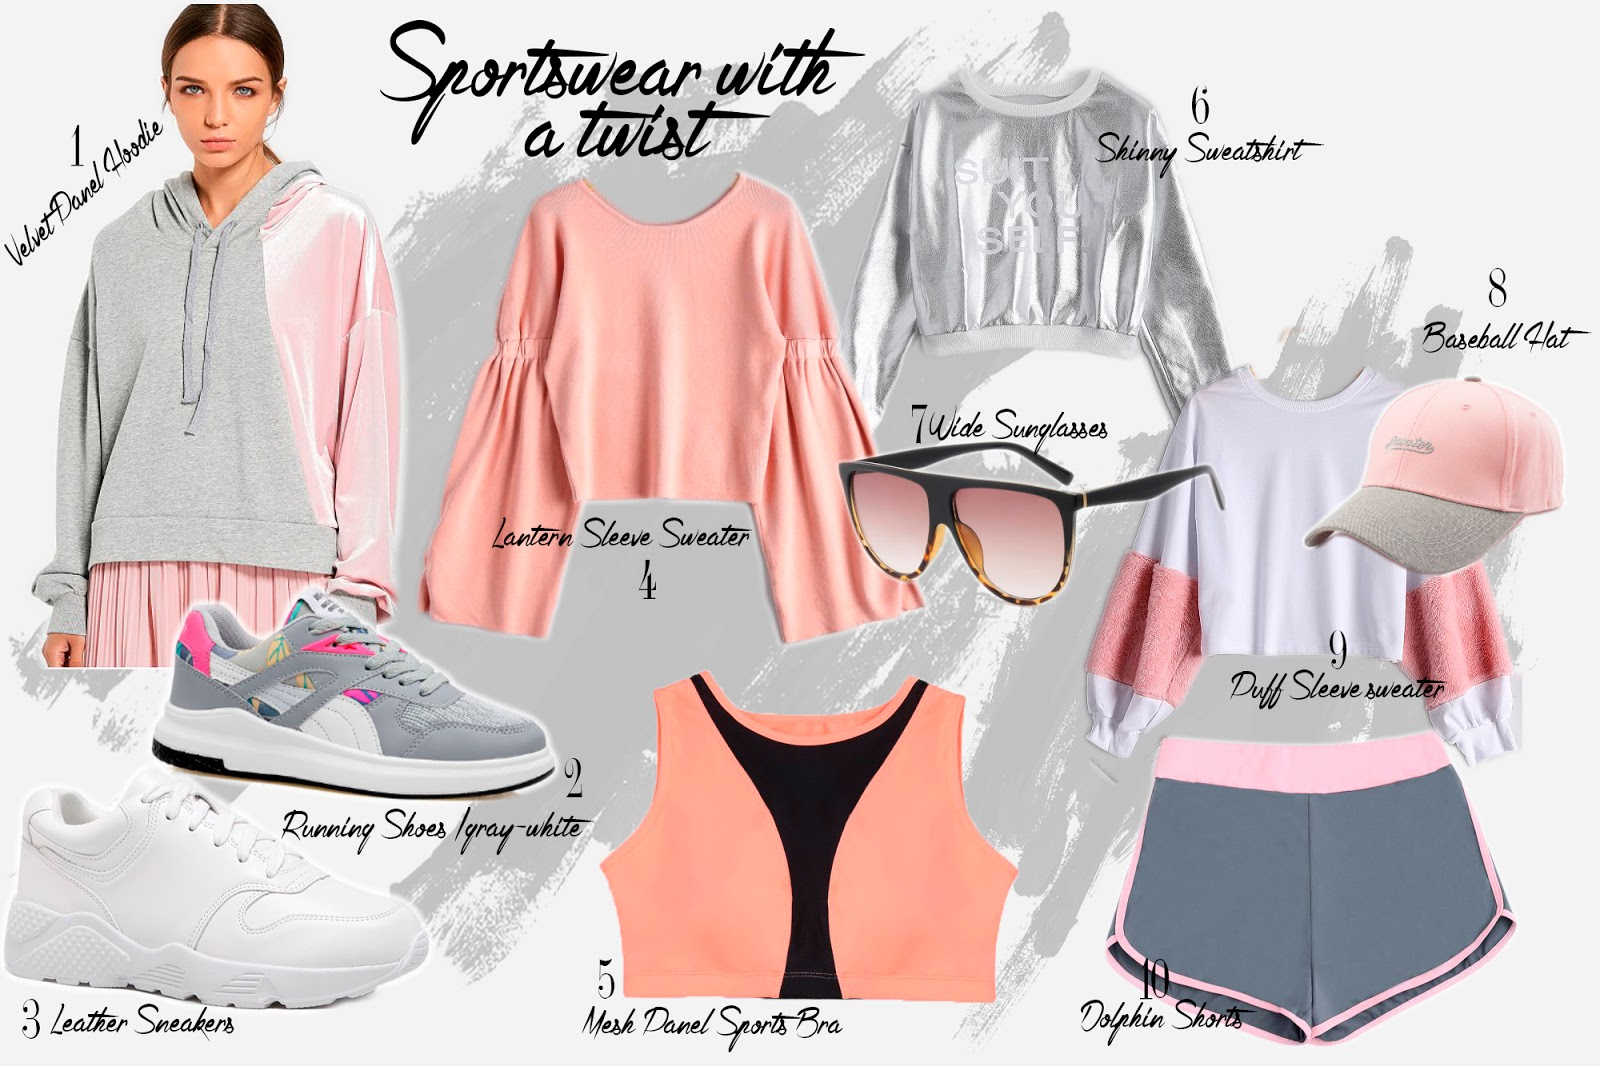 Sport chic outfit ideas for fall - velvet hoodie- running shoes under $100